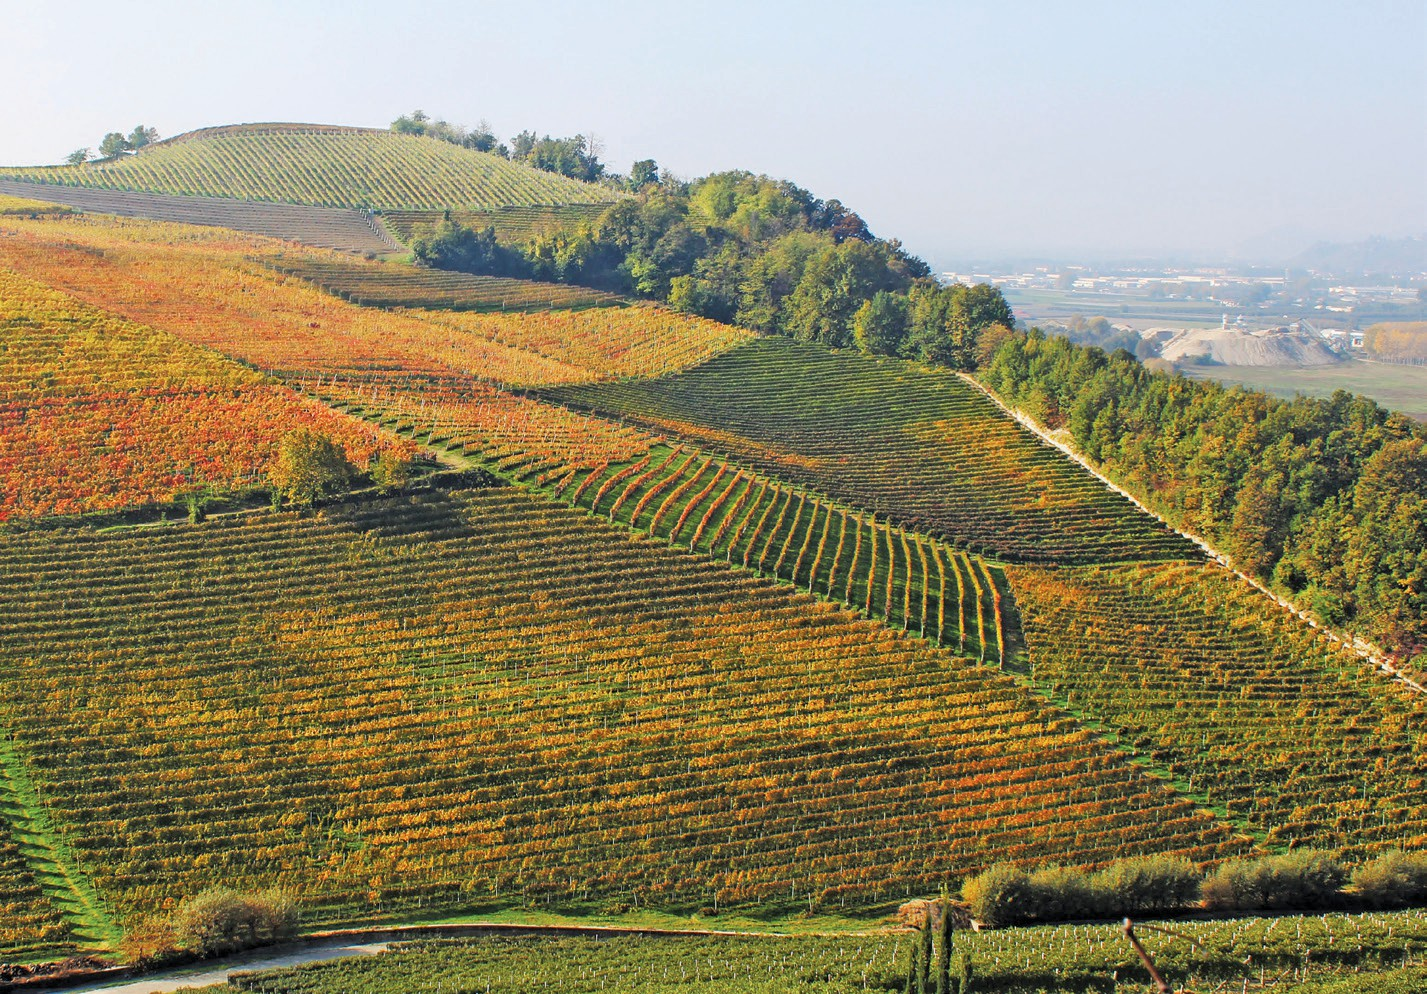 Vineyard SPOTLIGHT: Barolo and Barbaresco are reigning